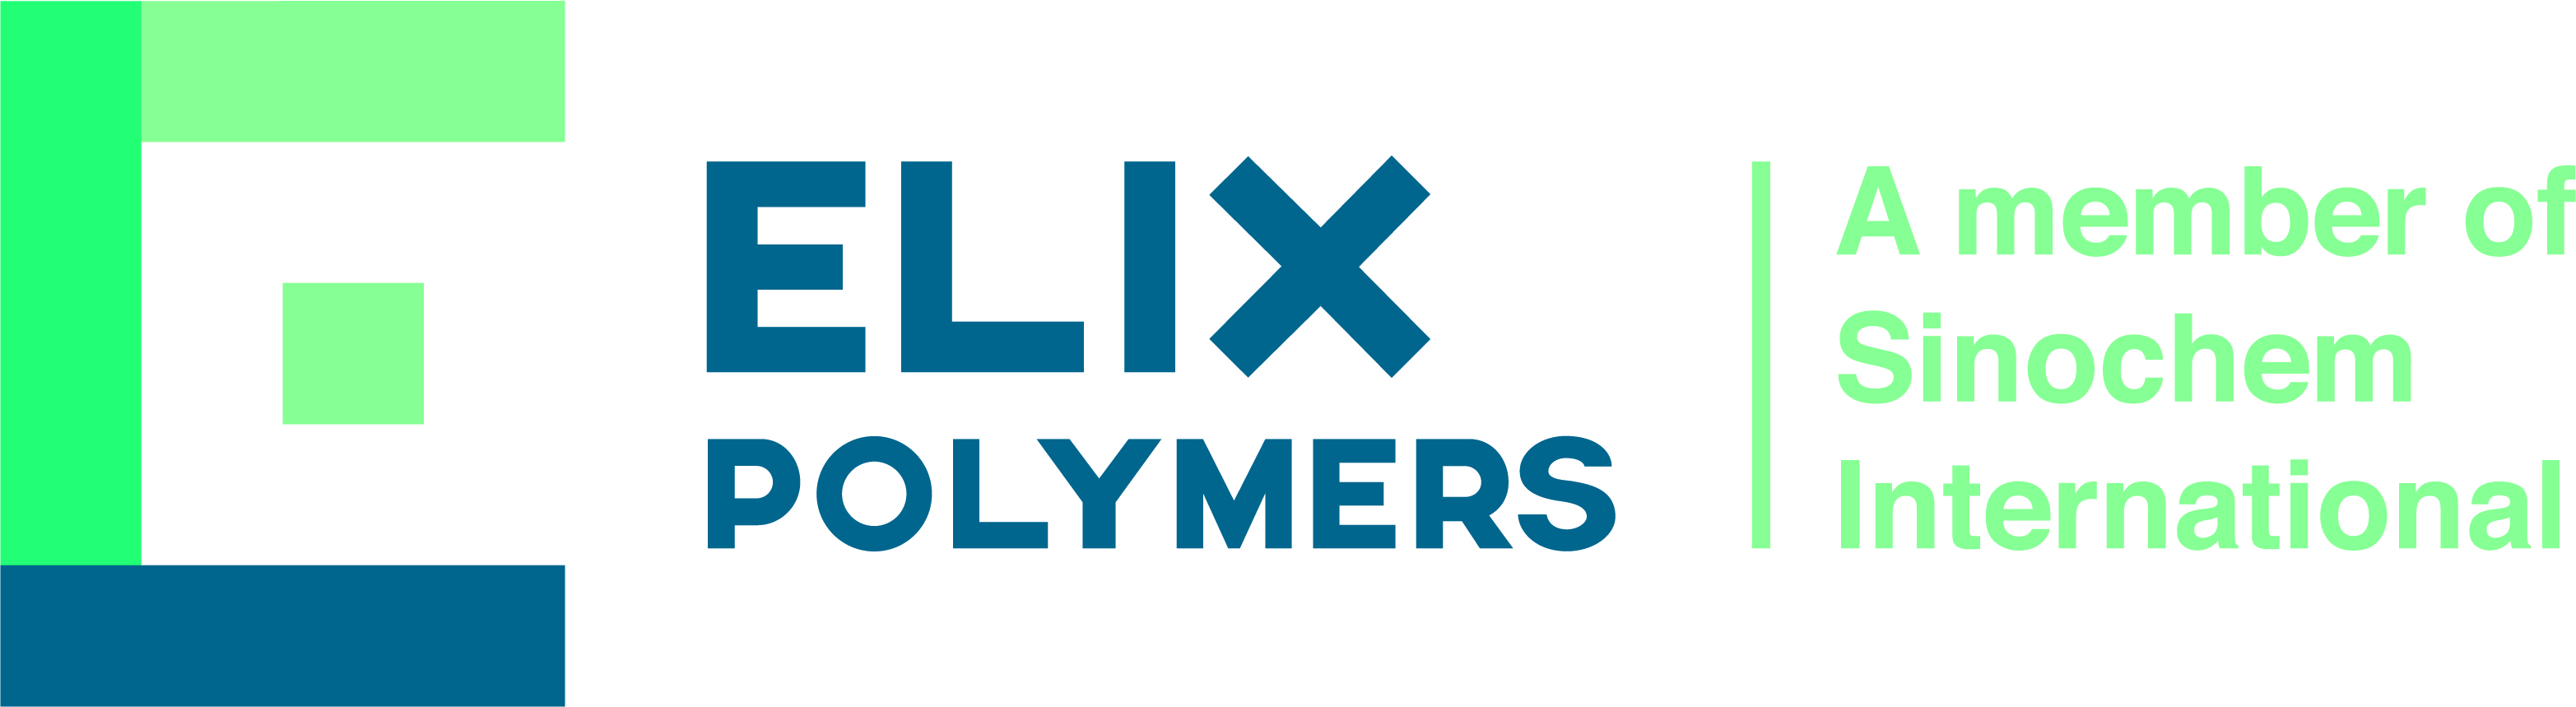 http://www.elix-polymers.com/